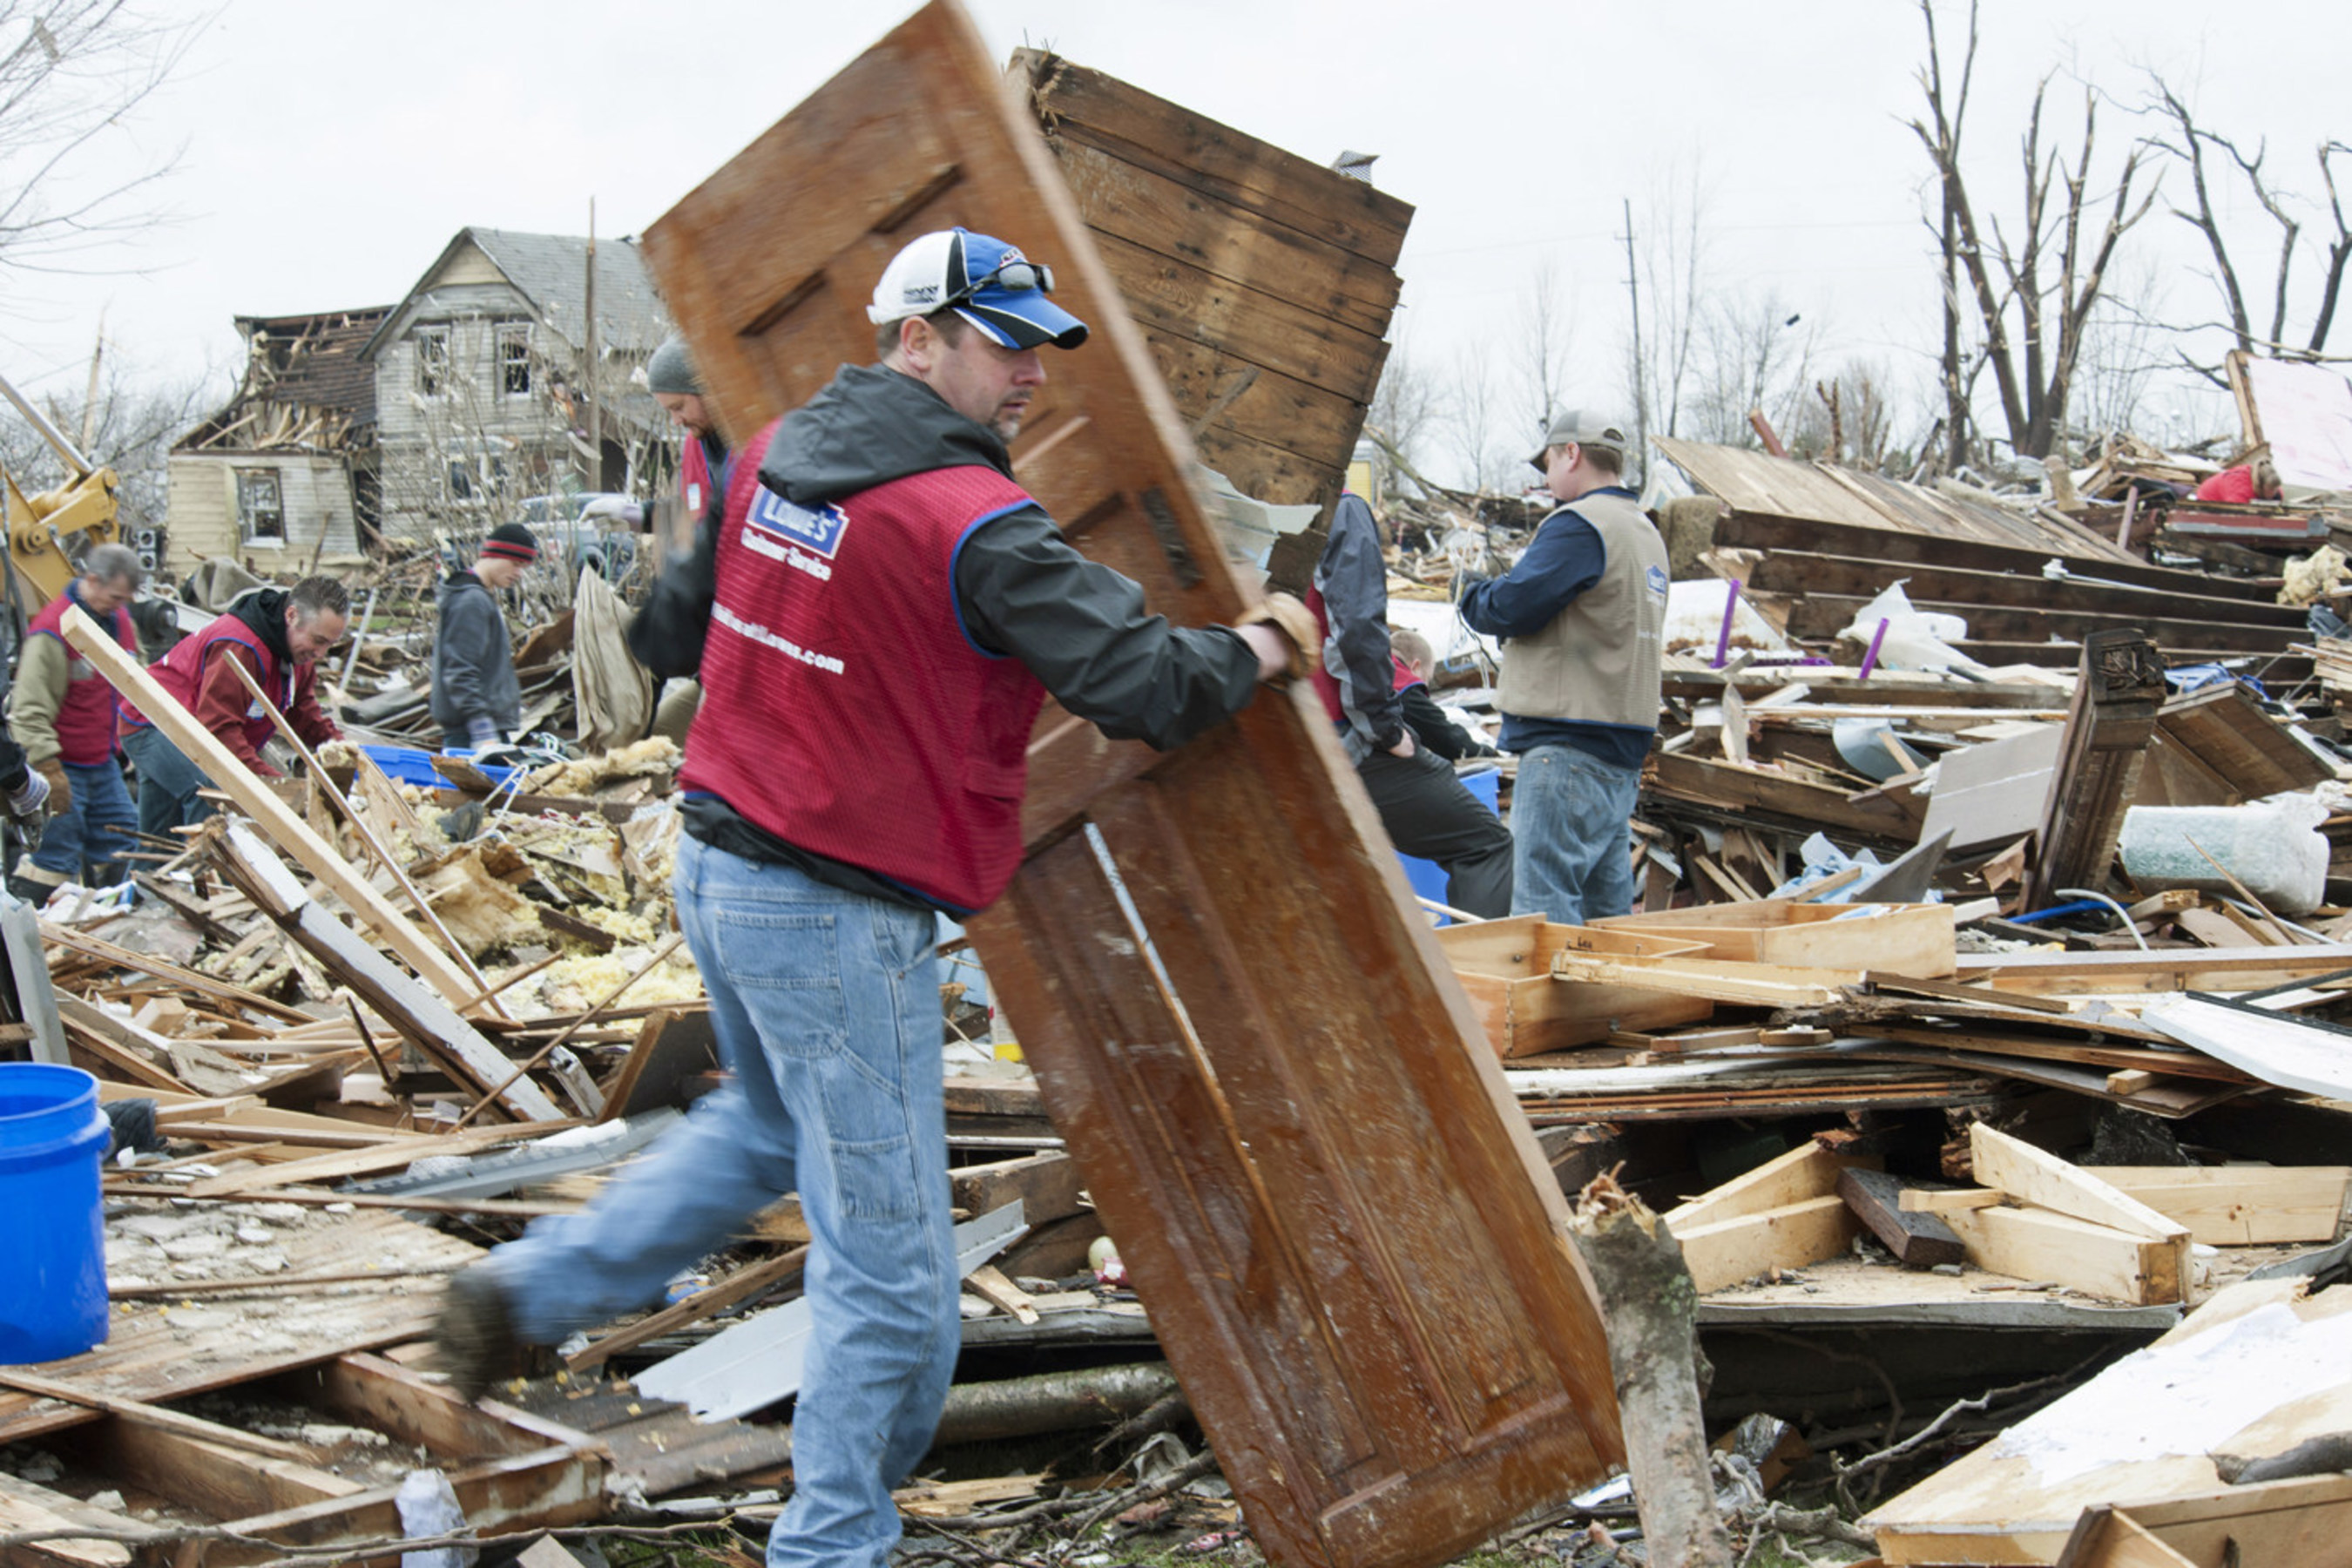 Lowe's has contributed more than $2 million and thousands of hours of volunteer support since partnering with the First Response Team in 2012.